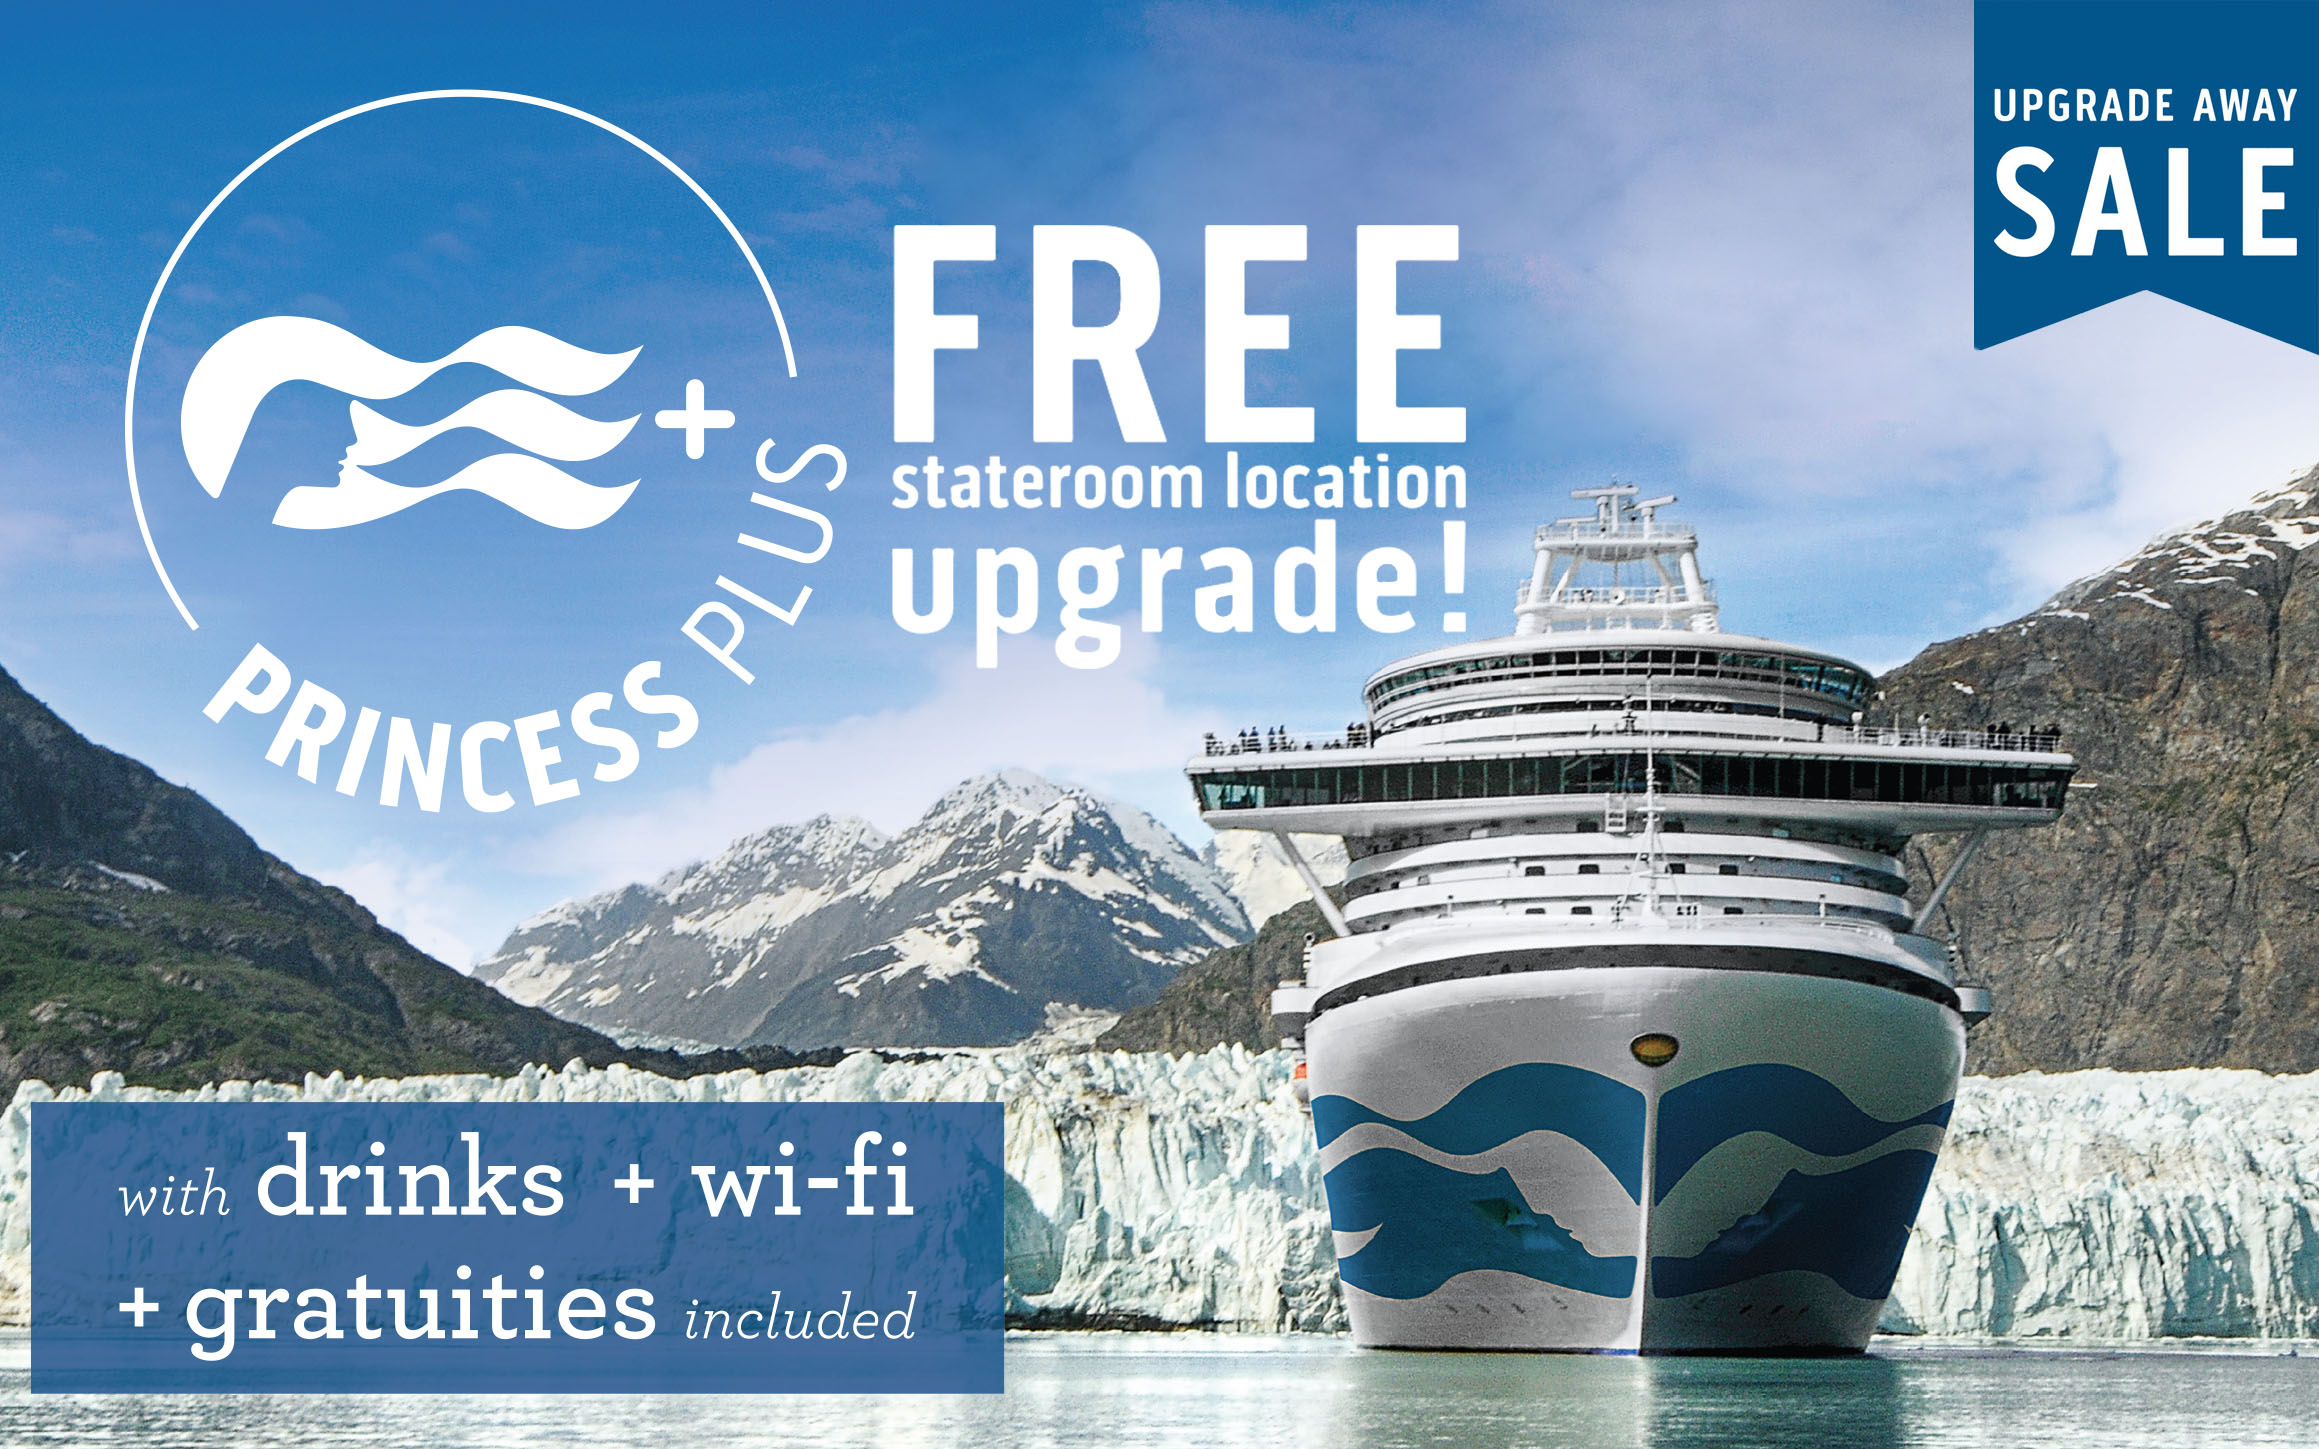 Princess PLUS - FREE Drinks + FREE Wi-Fi + FREE gratuities + FREE Stateroom location upgrade